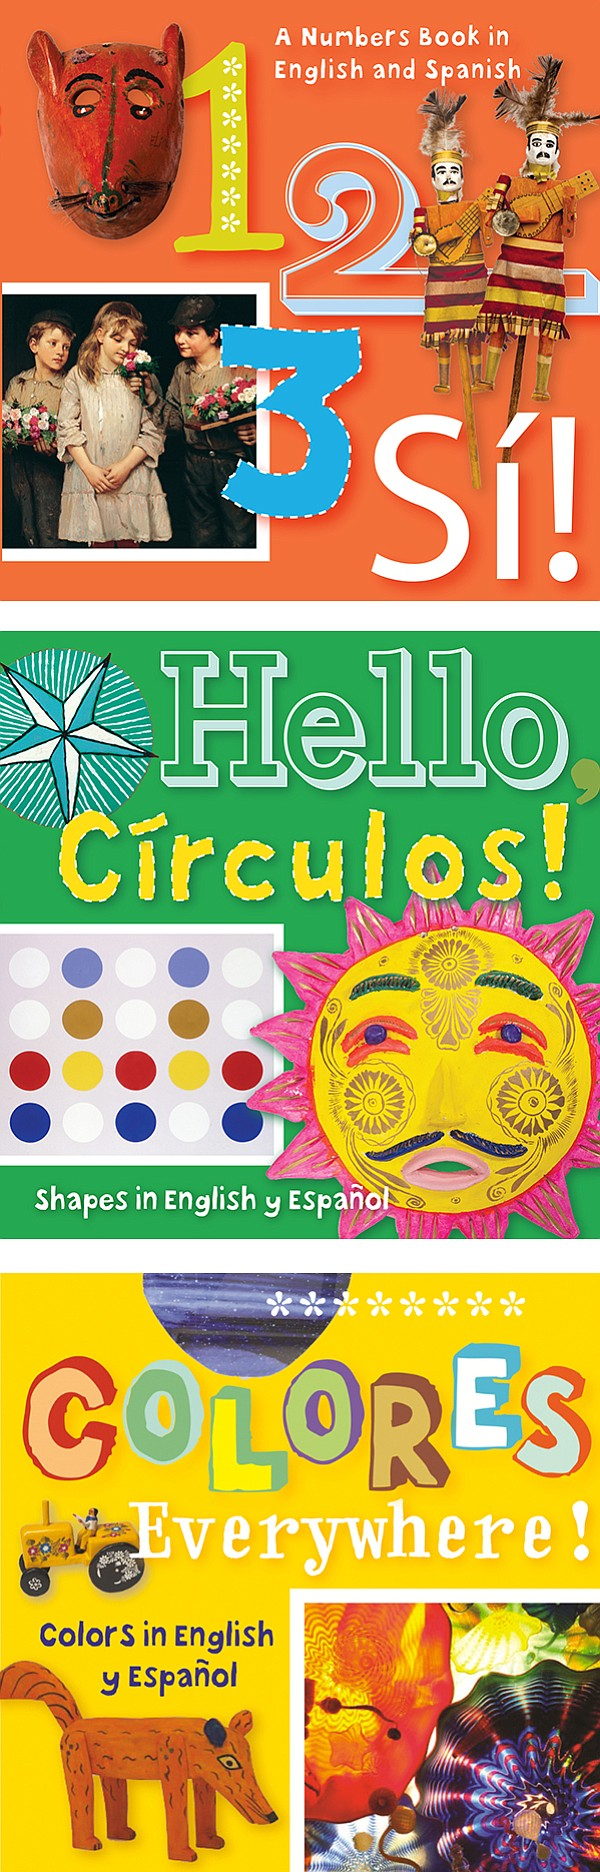 Covers of three bilingual books for children.